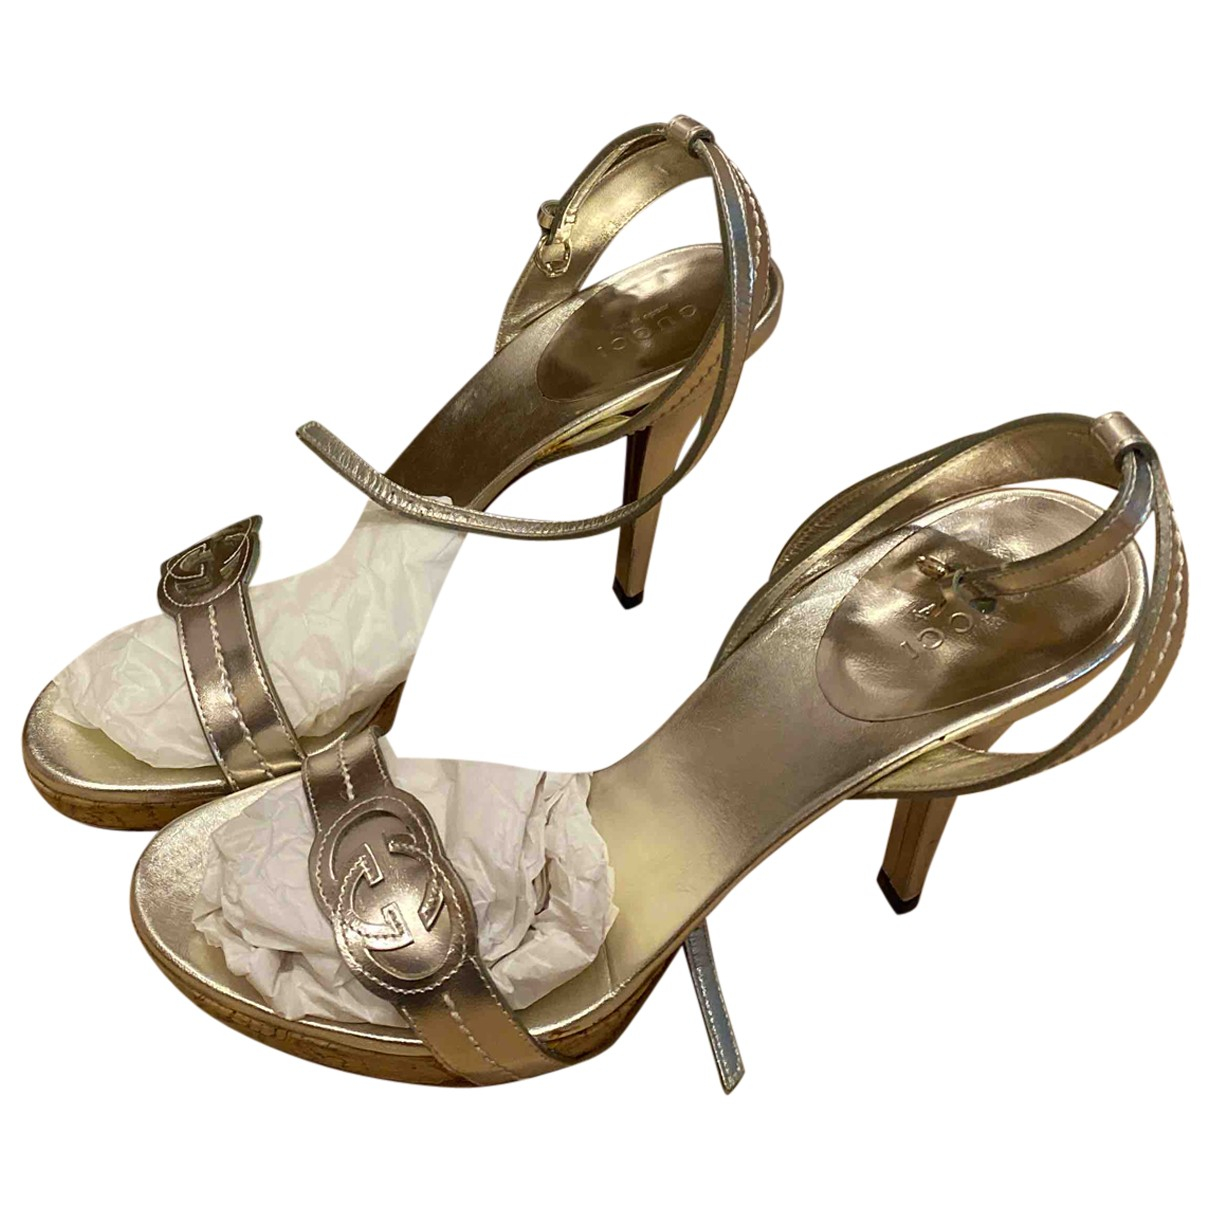 Gucci N Silver Leather Sandals for Women 38 EU